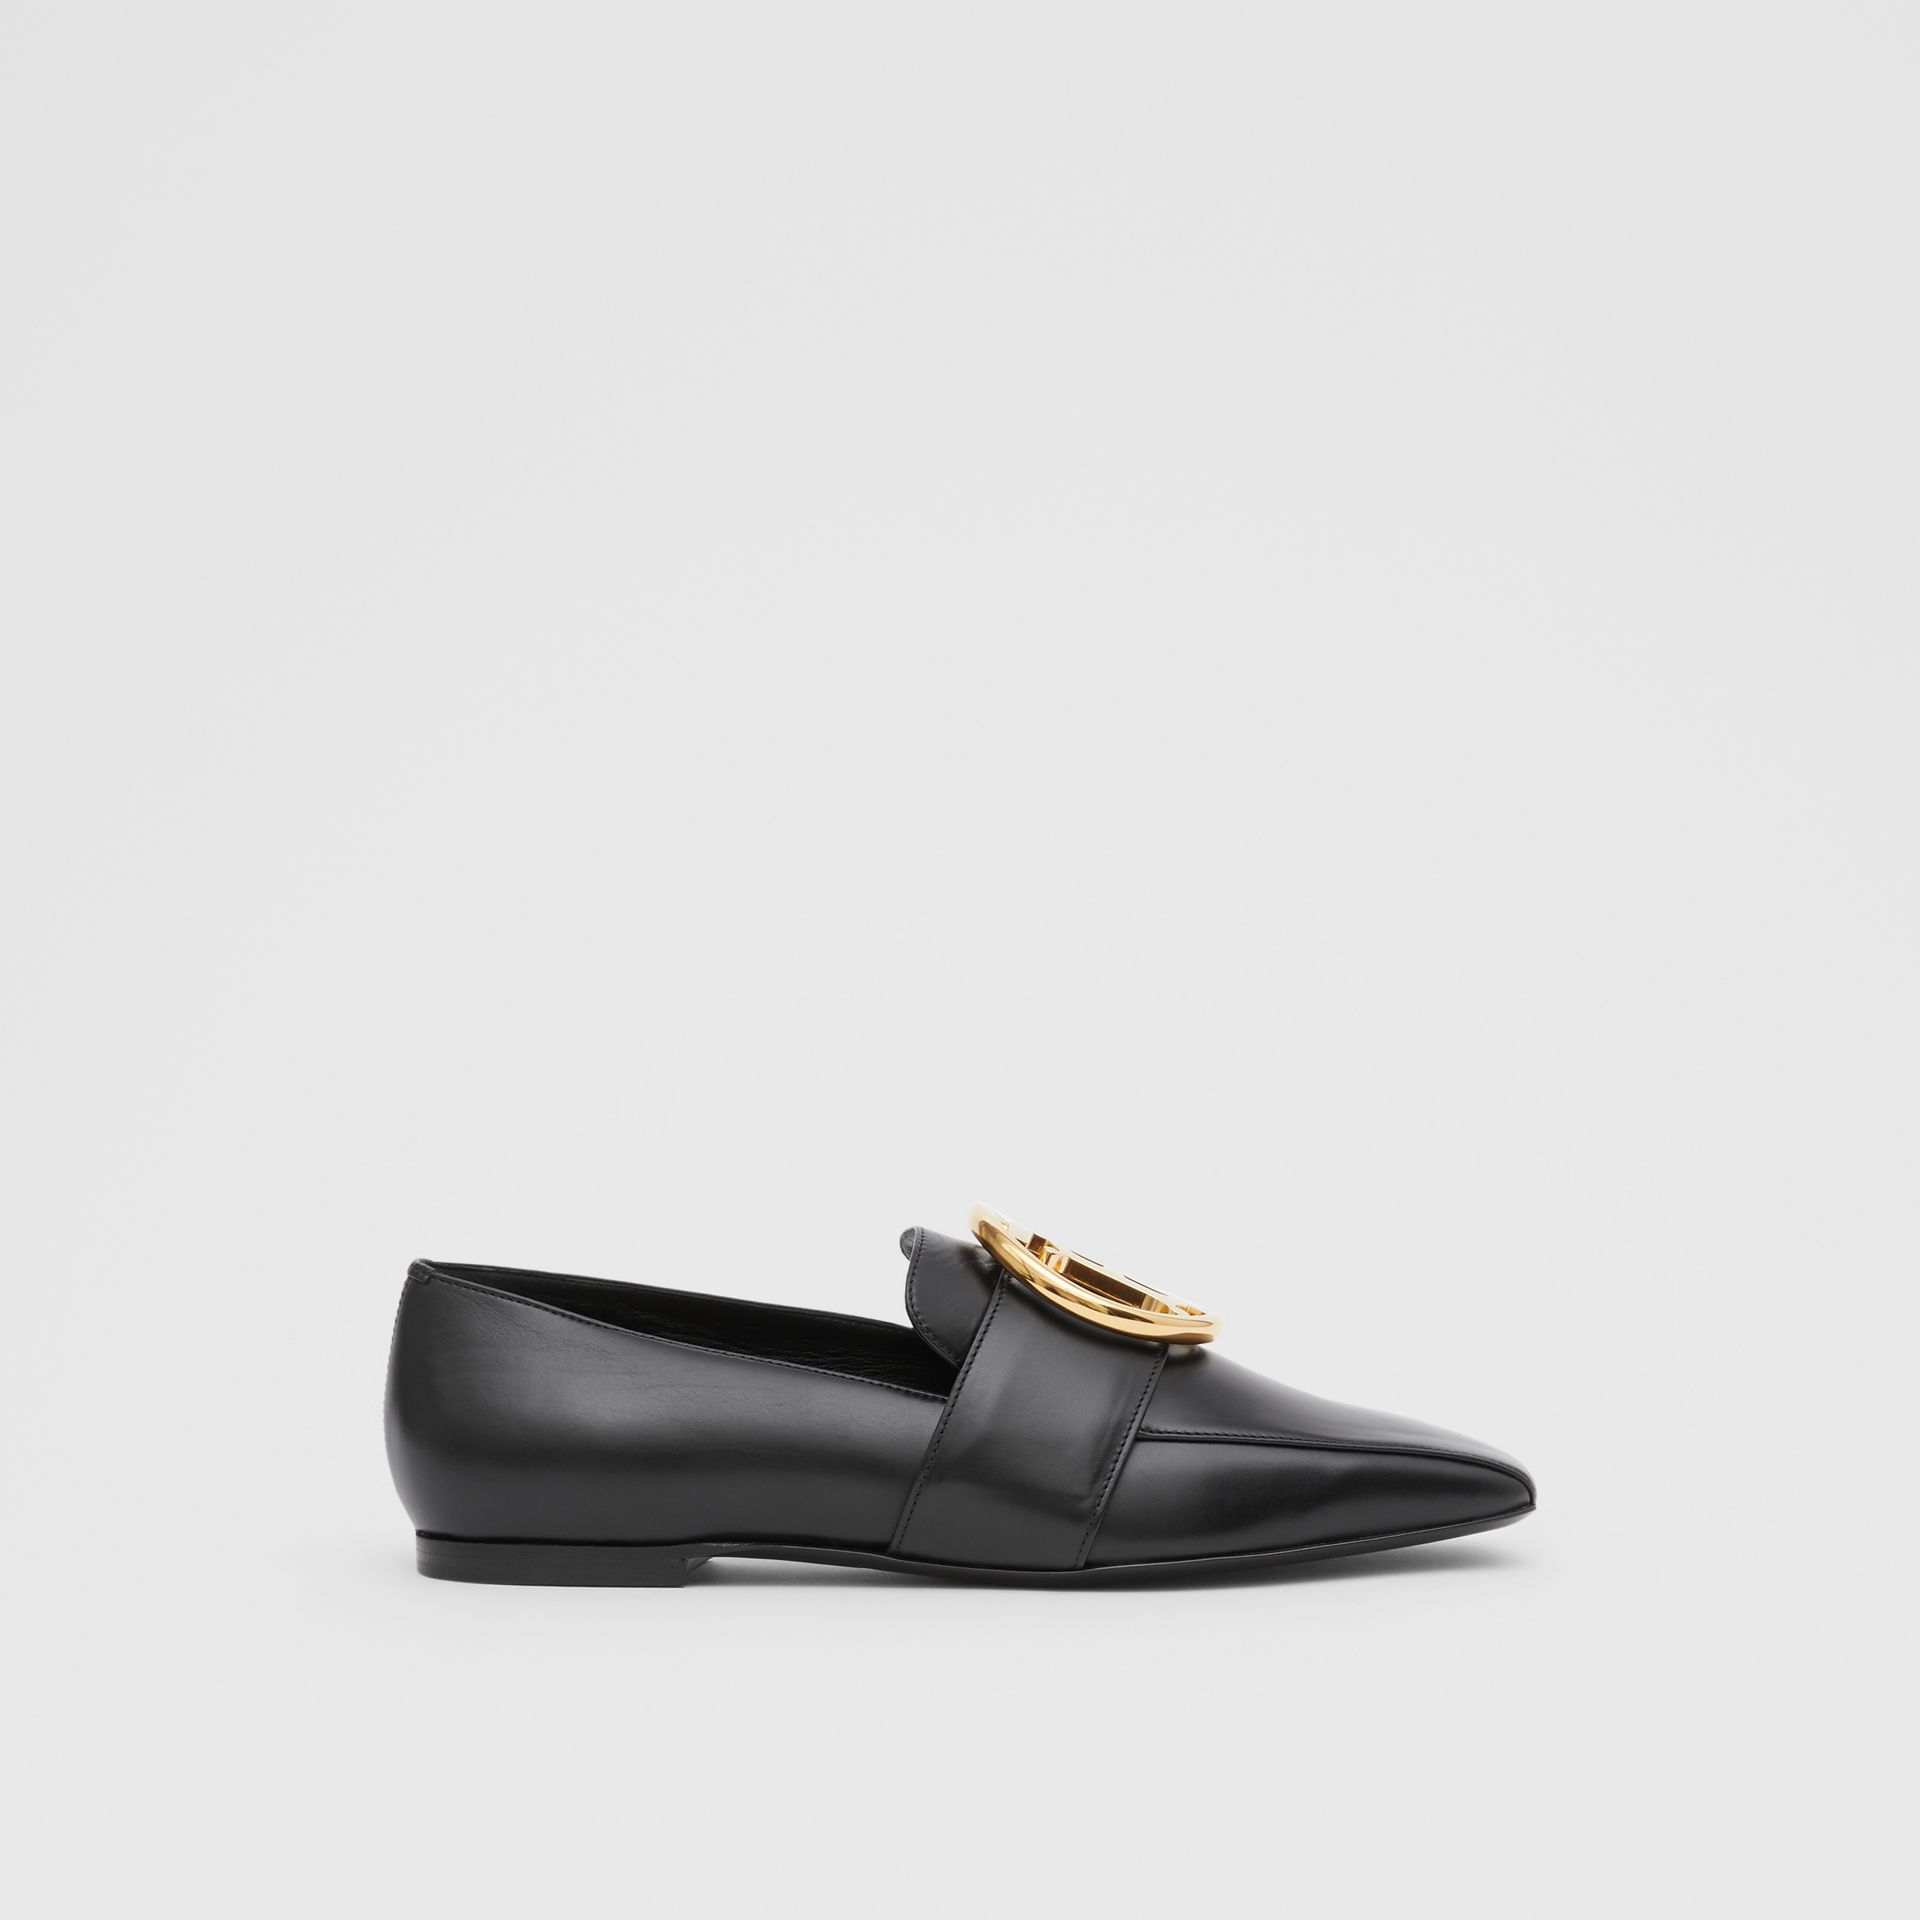 Monogram Motif Leather Loafers in Black - Women | Burberry United Kingdom - gallery image 4